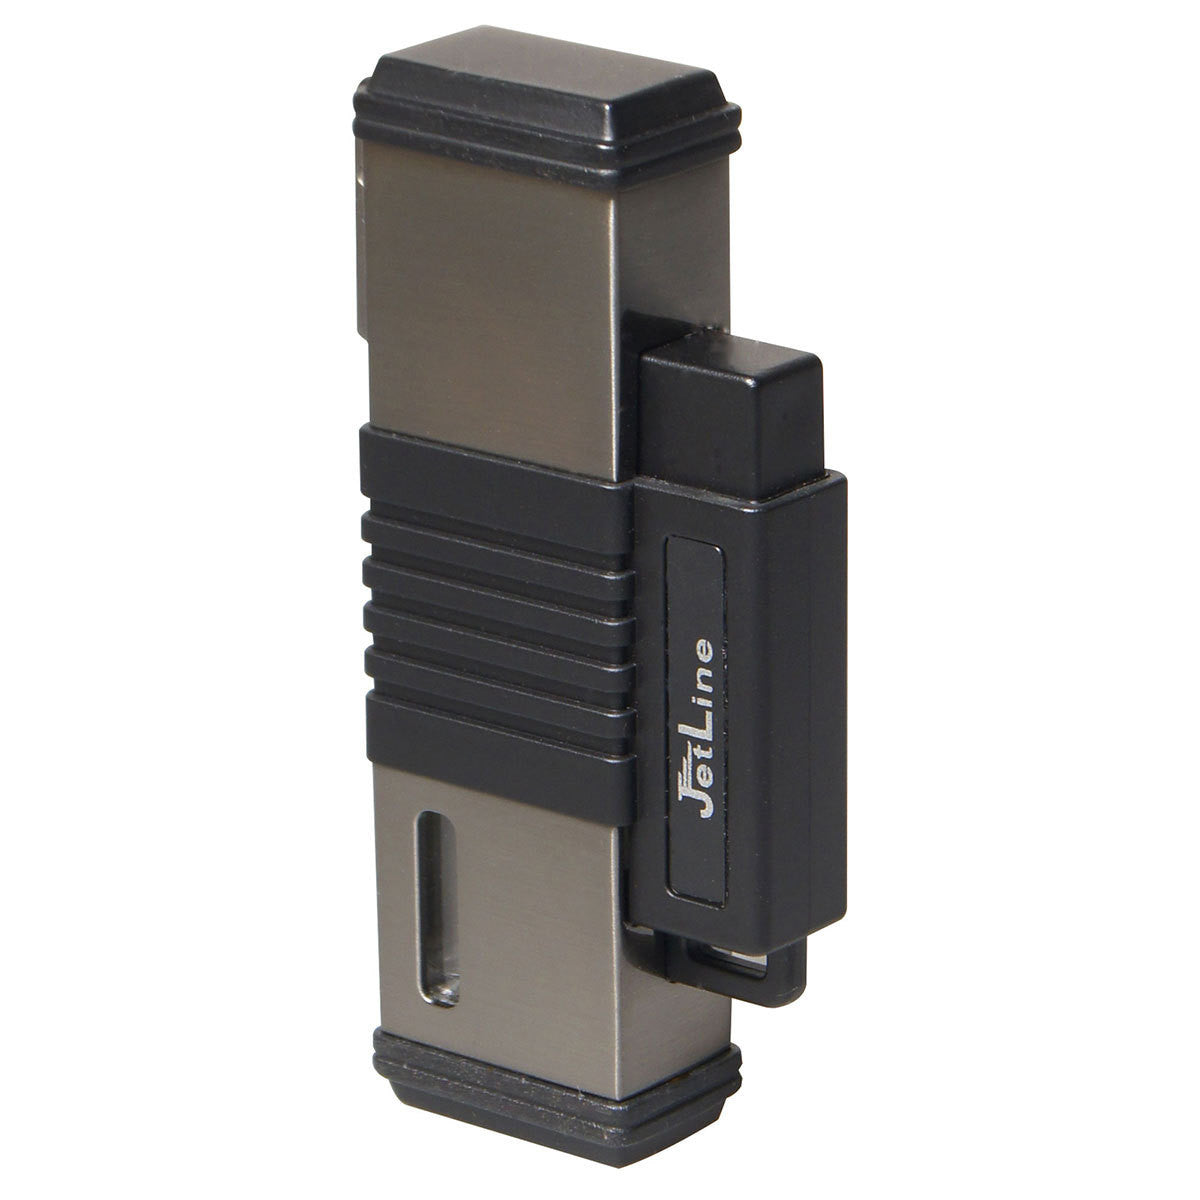 New York Double Jet Black Cigar Lighter - Cigar boulevard